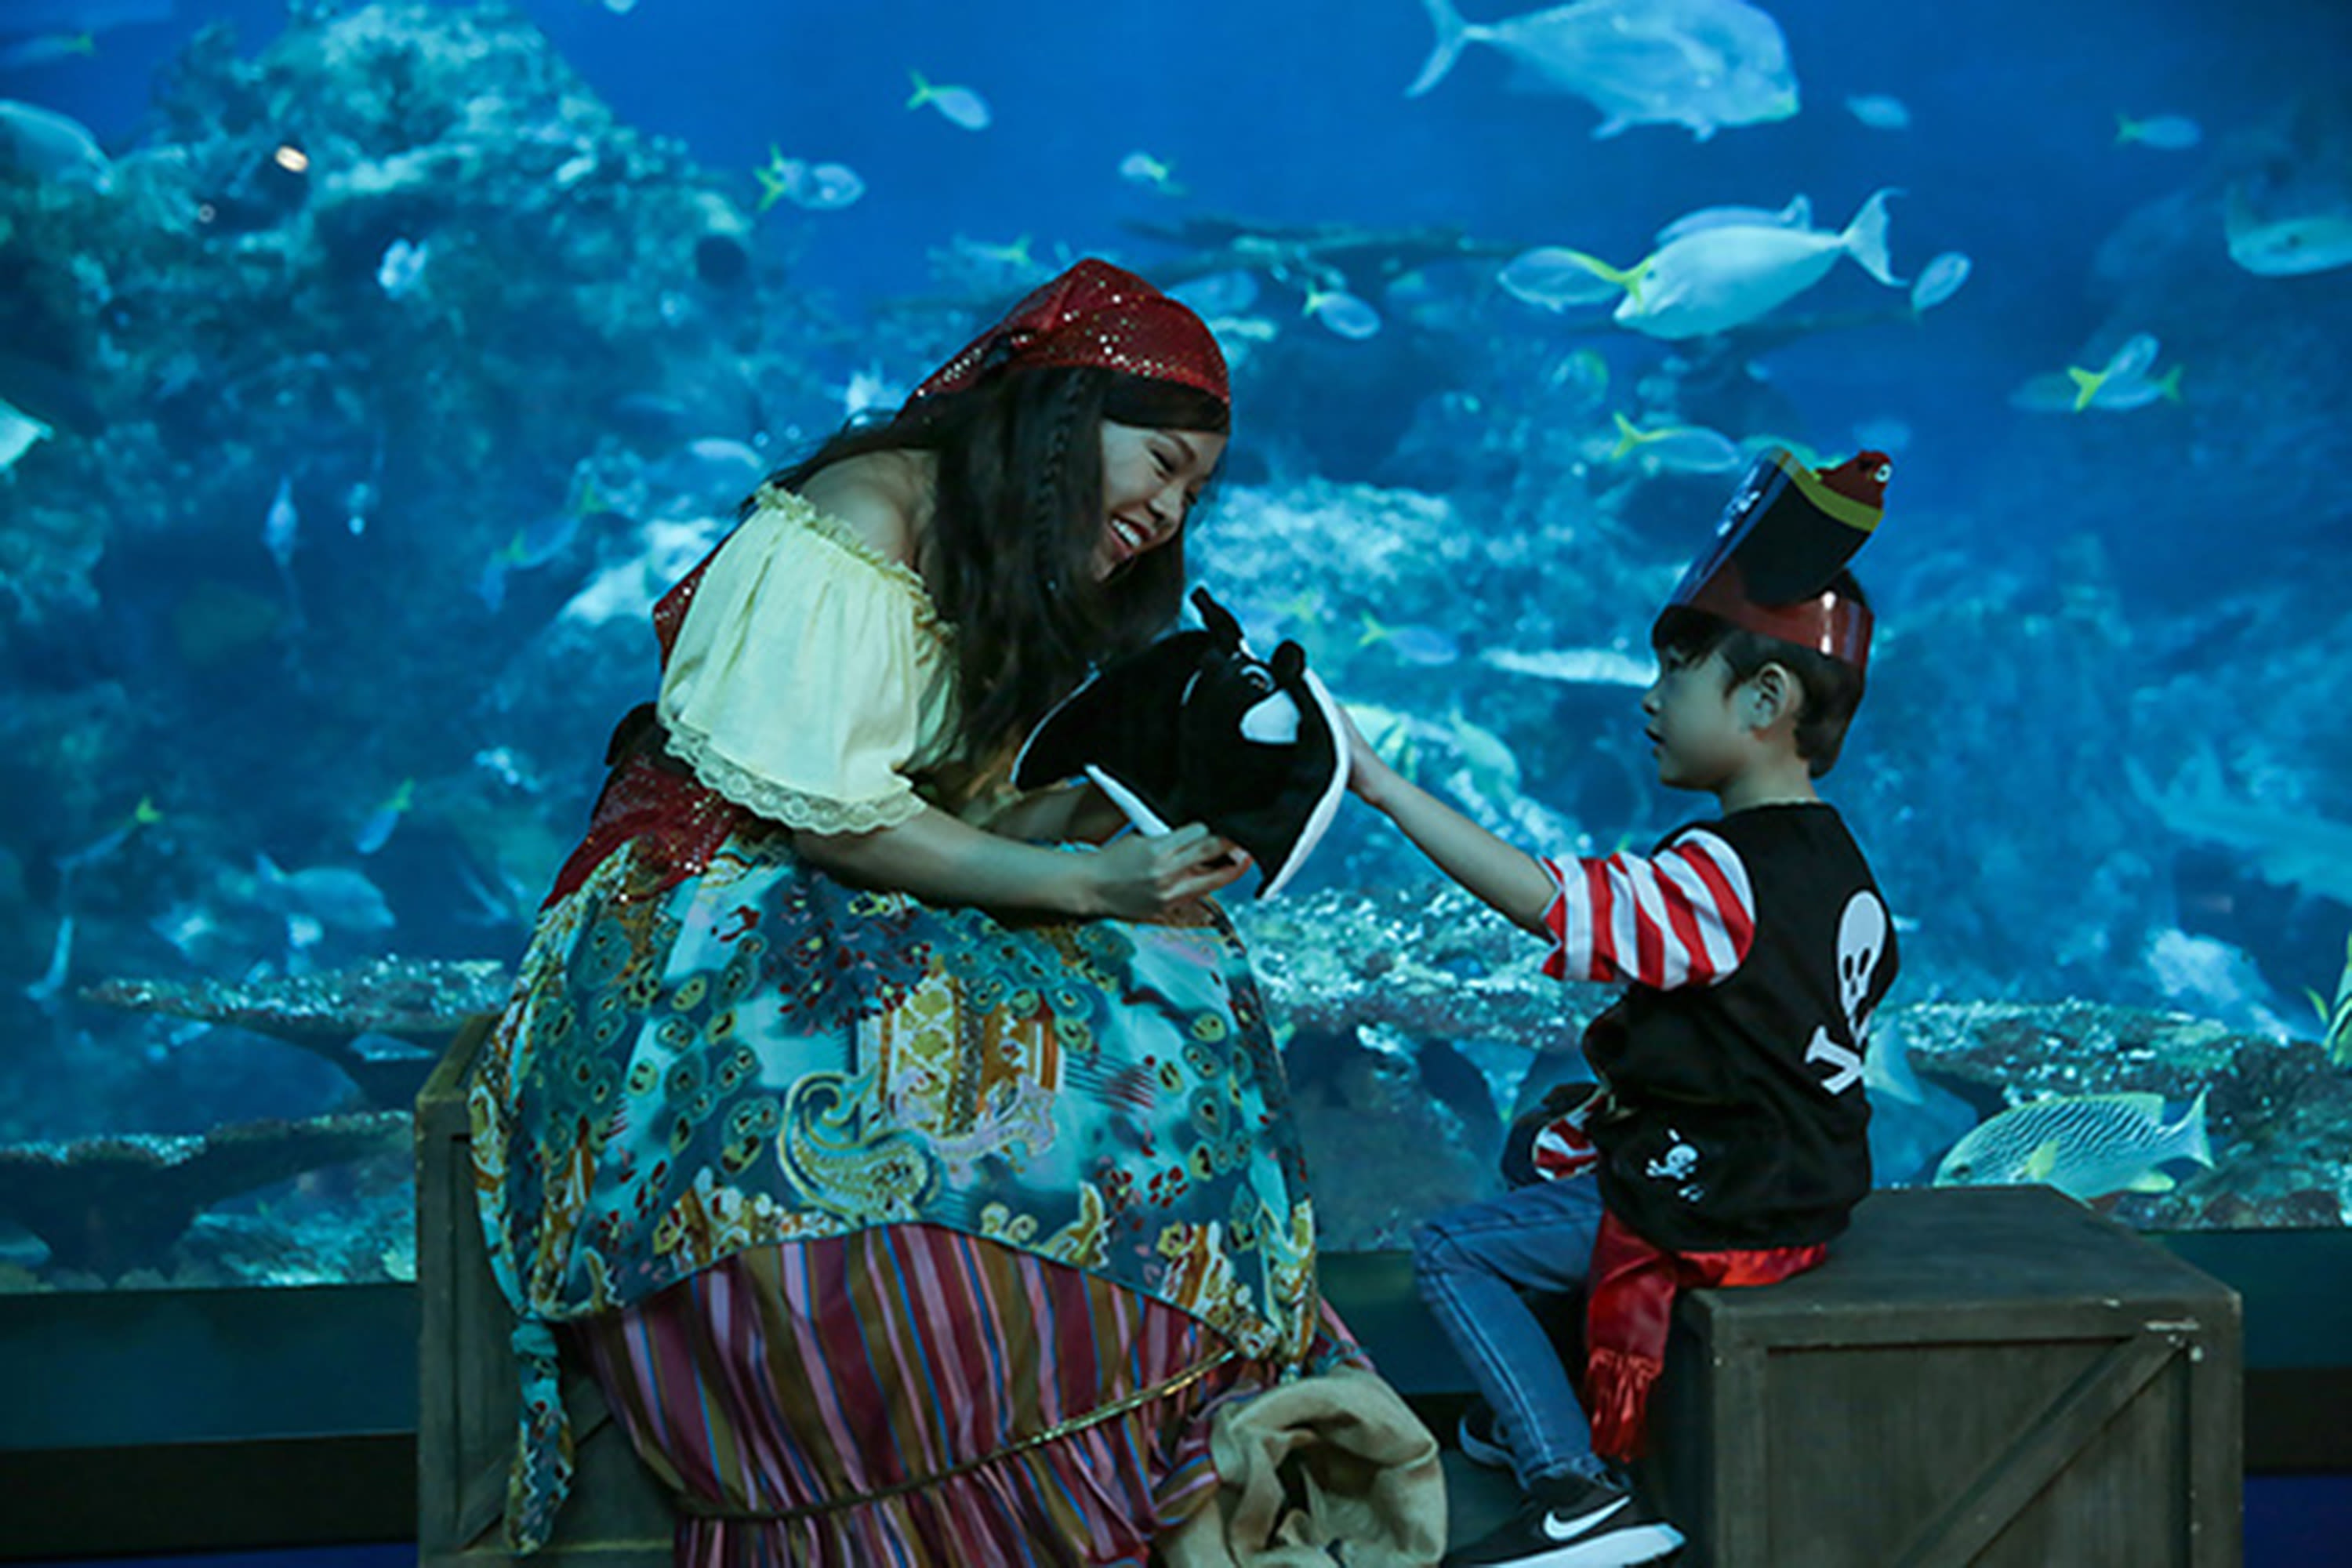 scare-yourselves-silly-at-these-horrific-halloween-scarefests-sea-aquarium